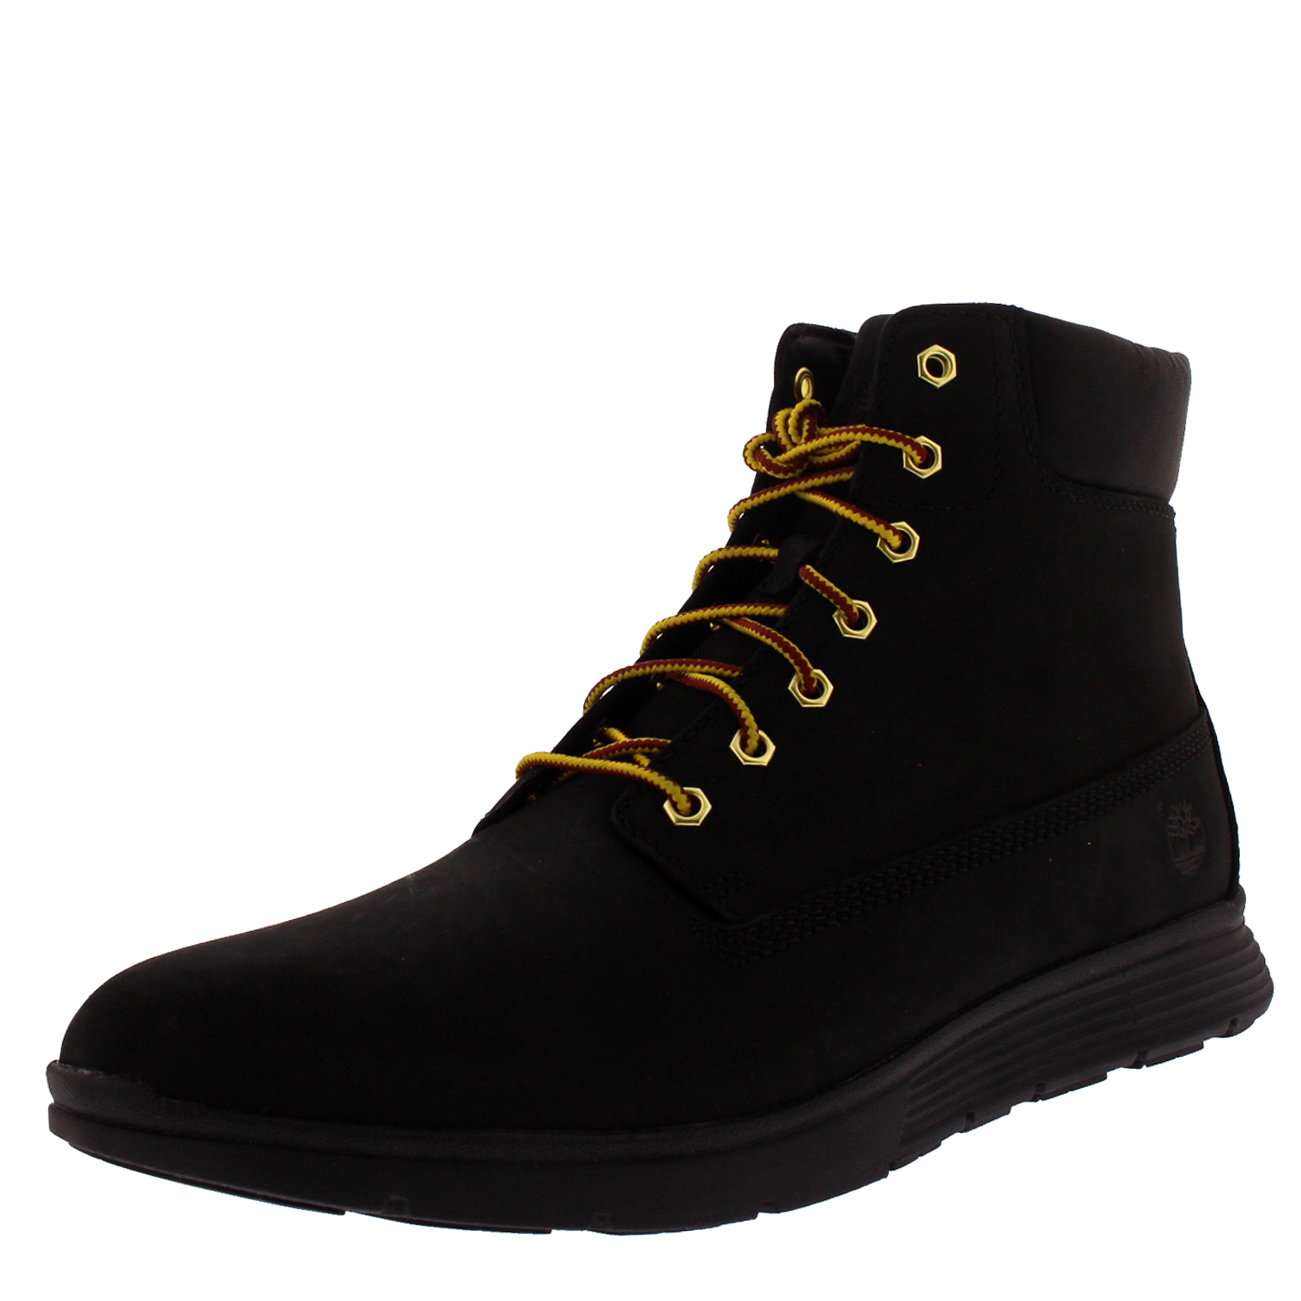 De S About Mens Timberland Killington 6 Inch Boot Walking Nubuck Ankle Boots Us  5